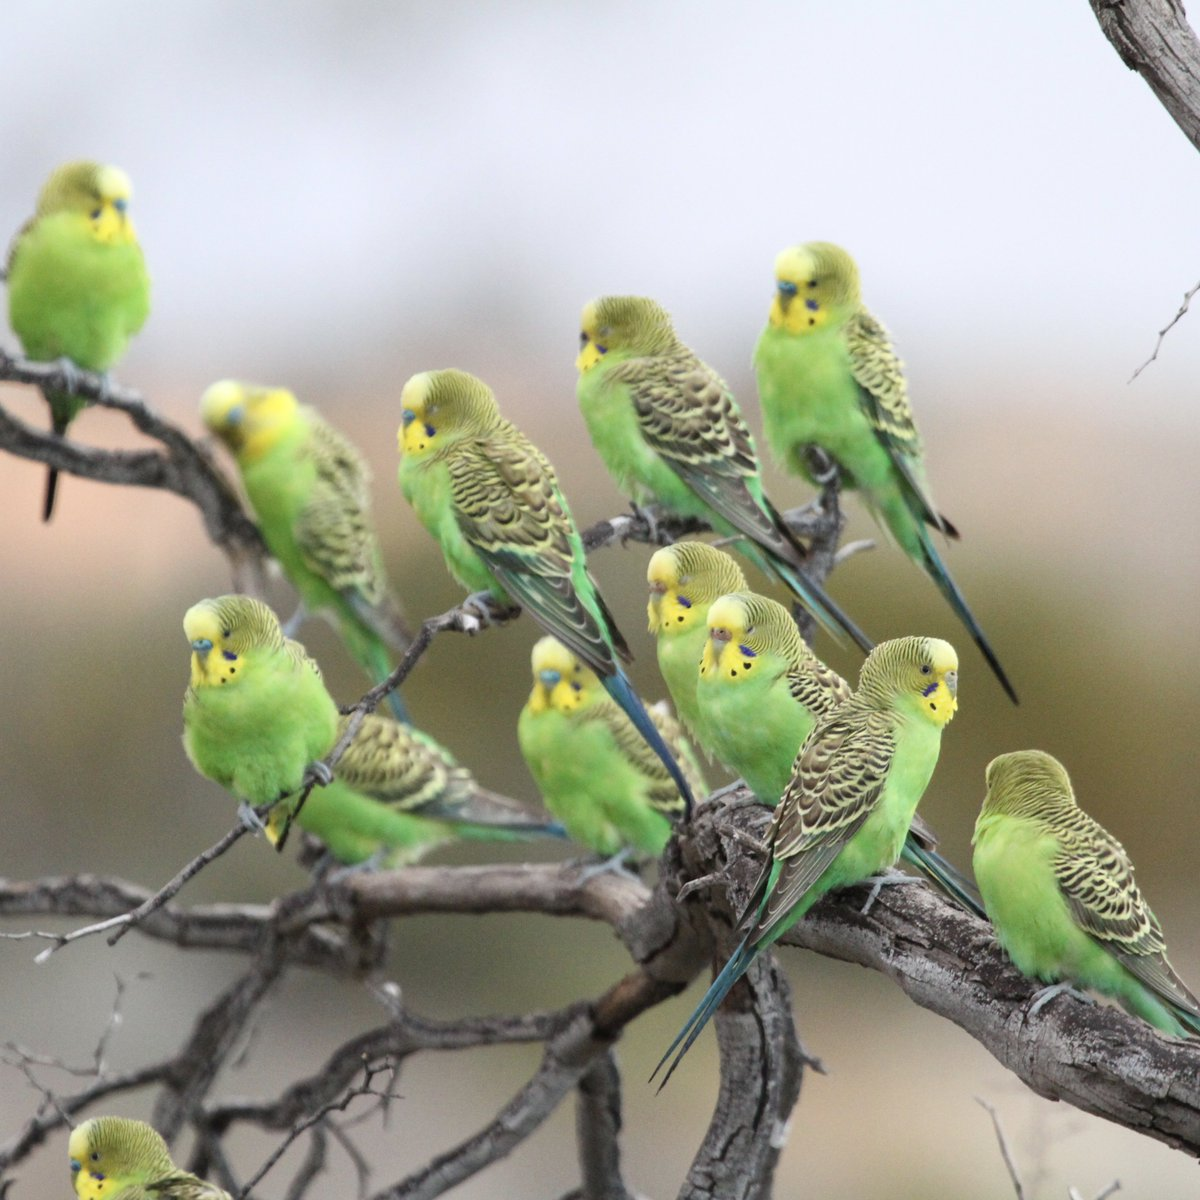 New #PhD studentship project available @DurBiol to study climate impacts on Australian outback nomadic birds, with @RichFullerUQ. Some great fieldwork opportunities in amazing habitats. International applicants welcome.For details see community.dur.ac.uk/s.g.willis/Dur…